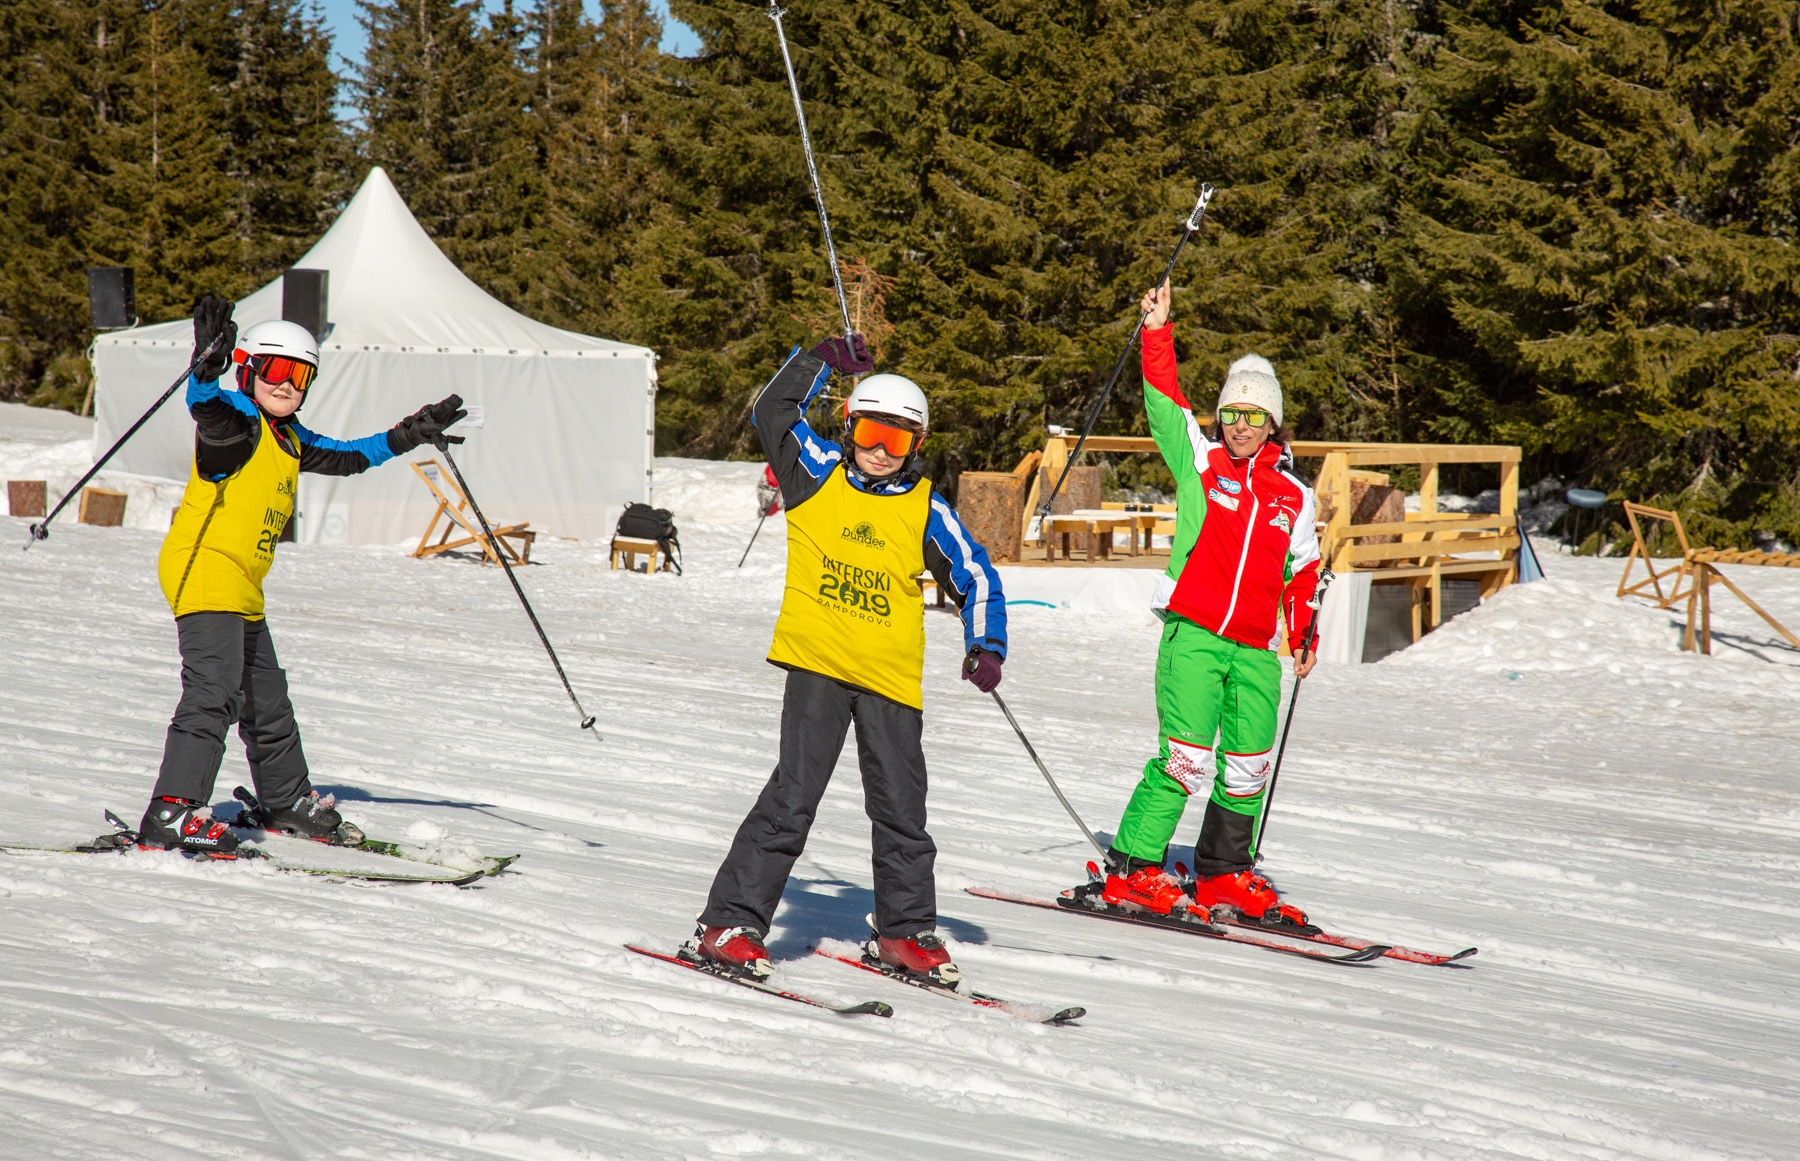 Interski ski school students with their instructor at Interski 2019